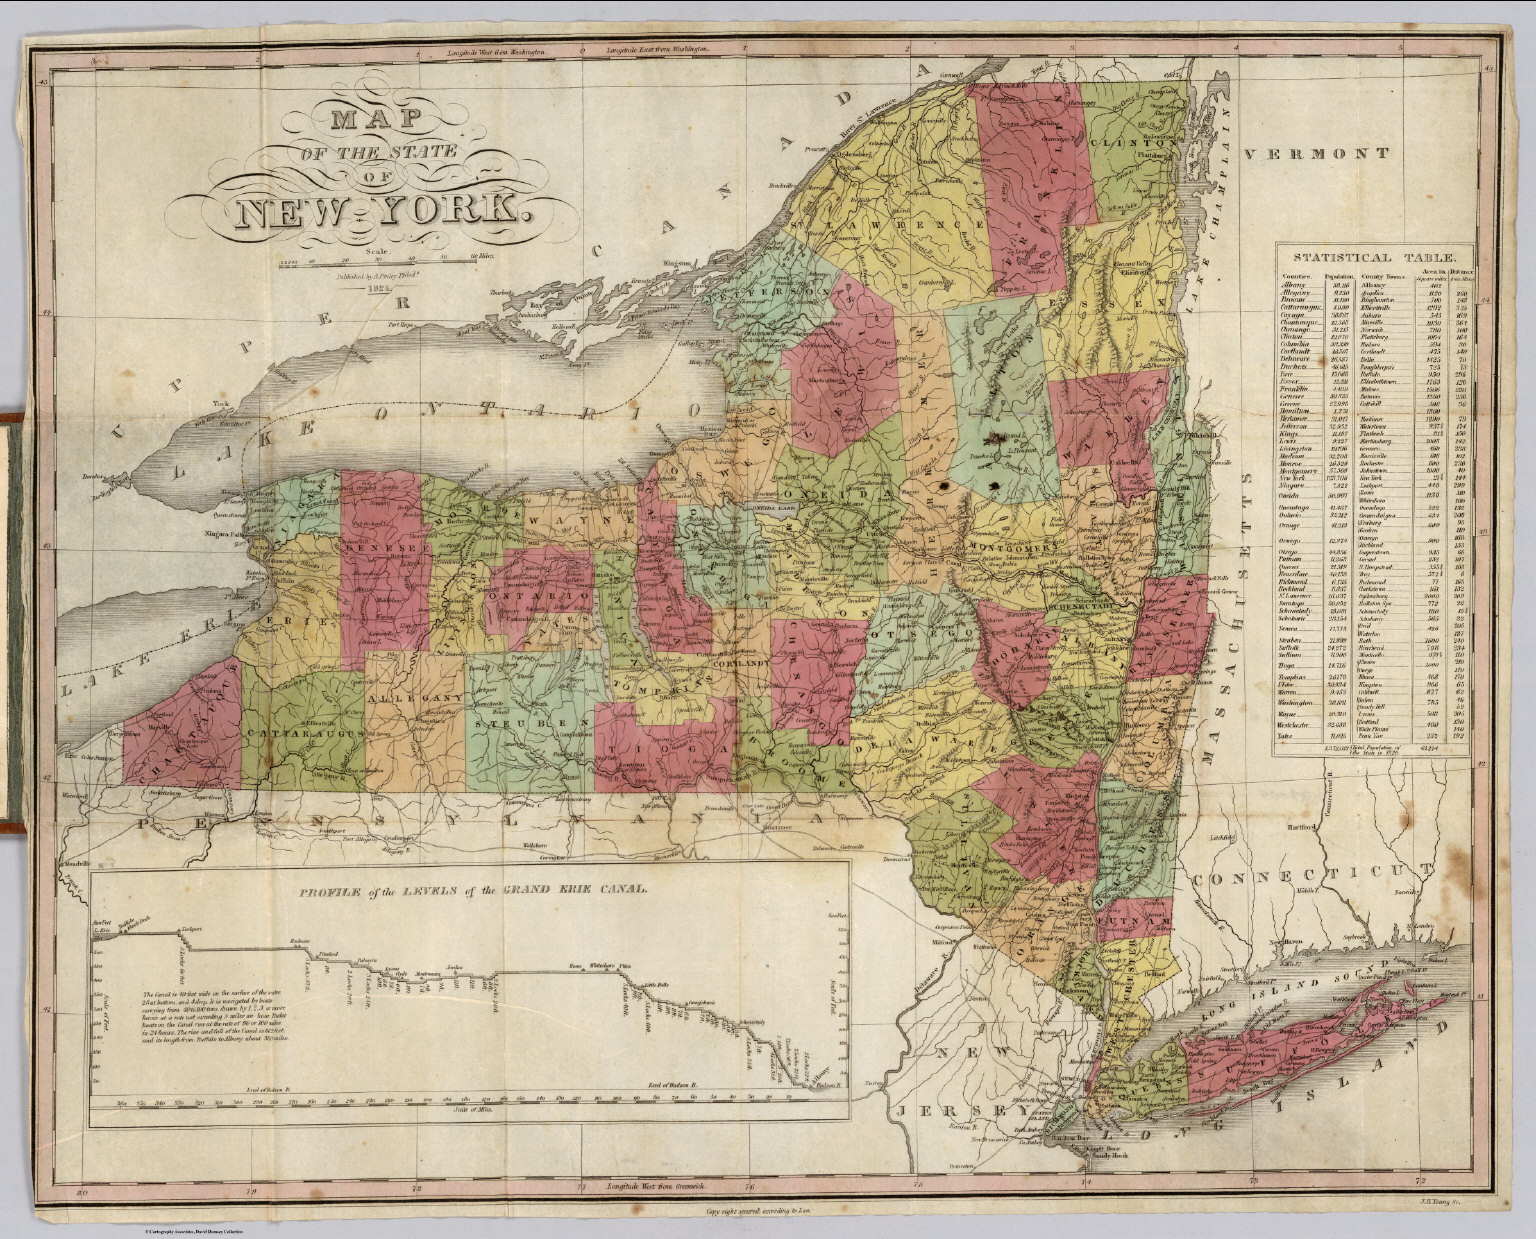 New York   David Rumsey Historical Map Collection GEOREFERENCE THIS MAP BUY PRINT EXPORT